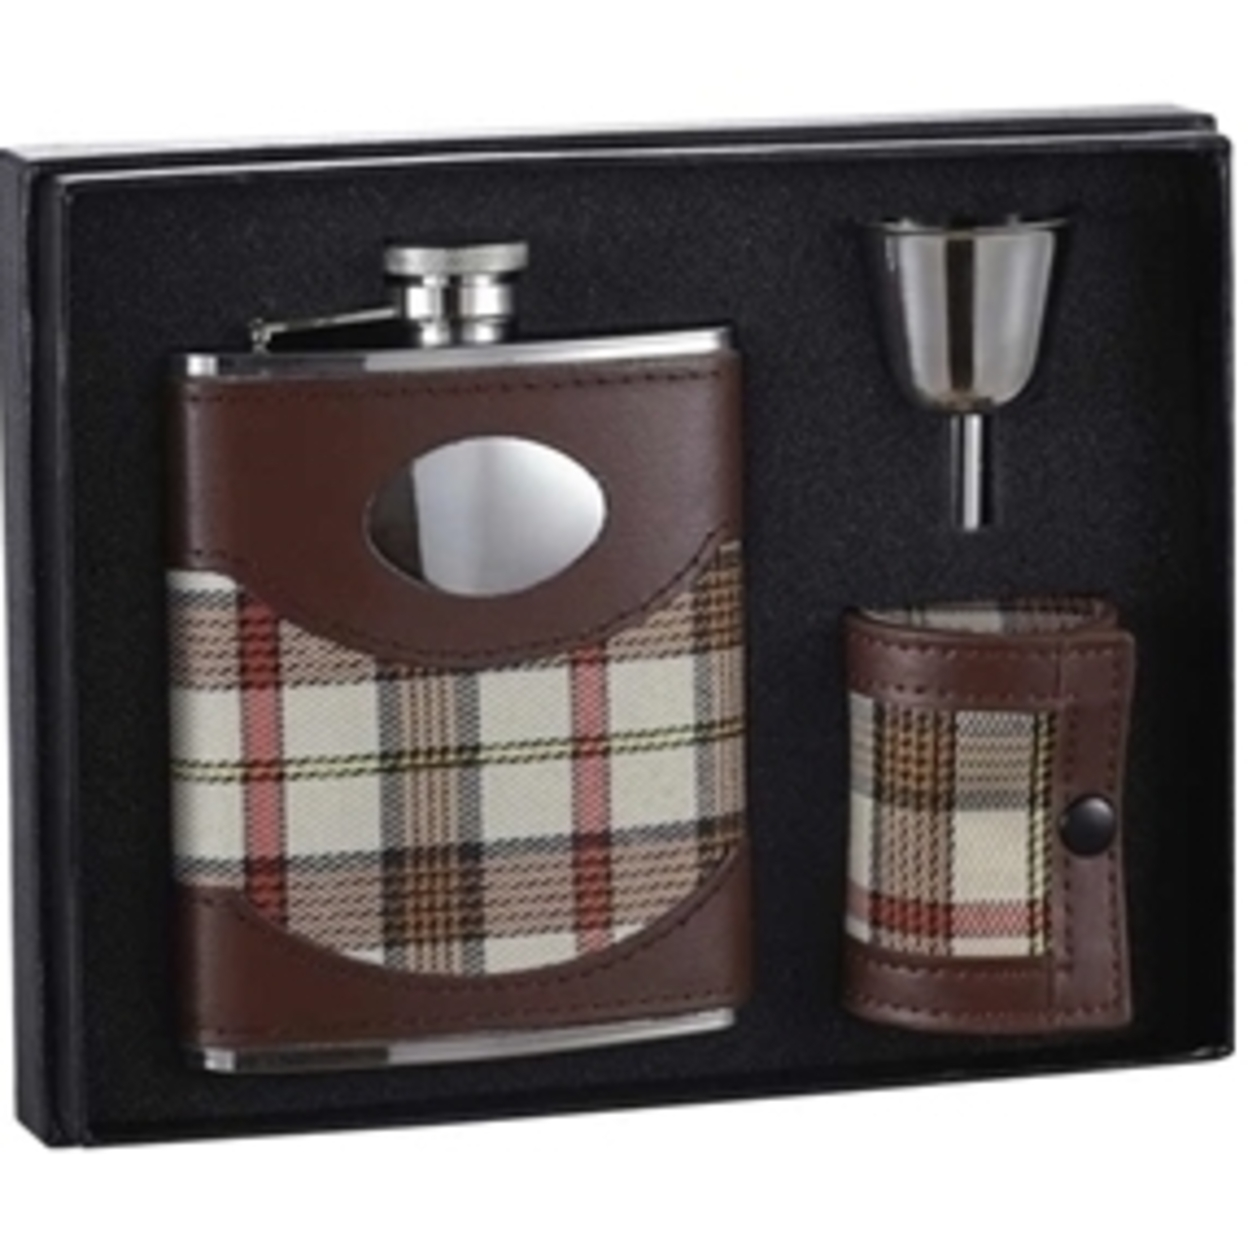 Visol Vset110 Braw 6oz Leather & Plaid Stainless Steel Flask Gift Set 5a3d72dfe2246116f7609354